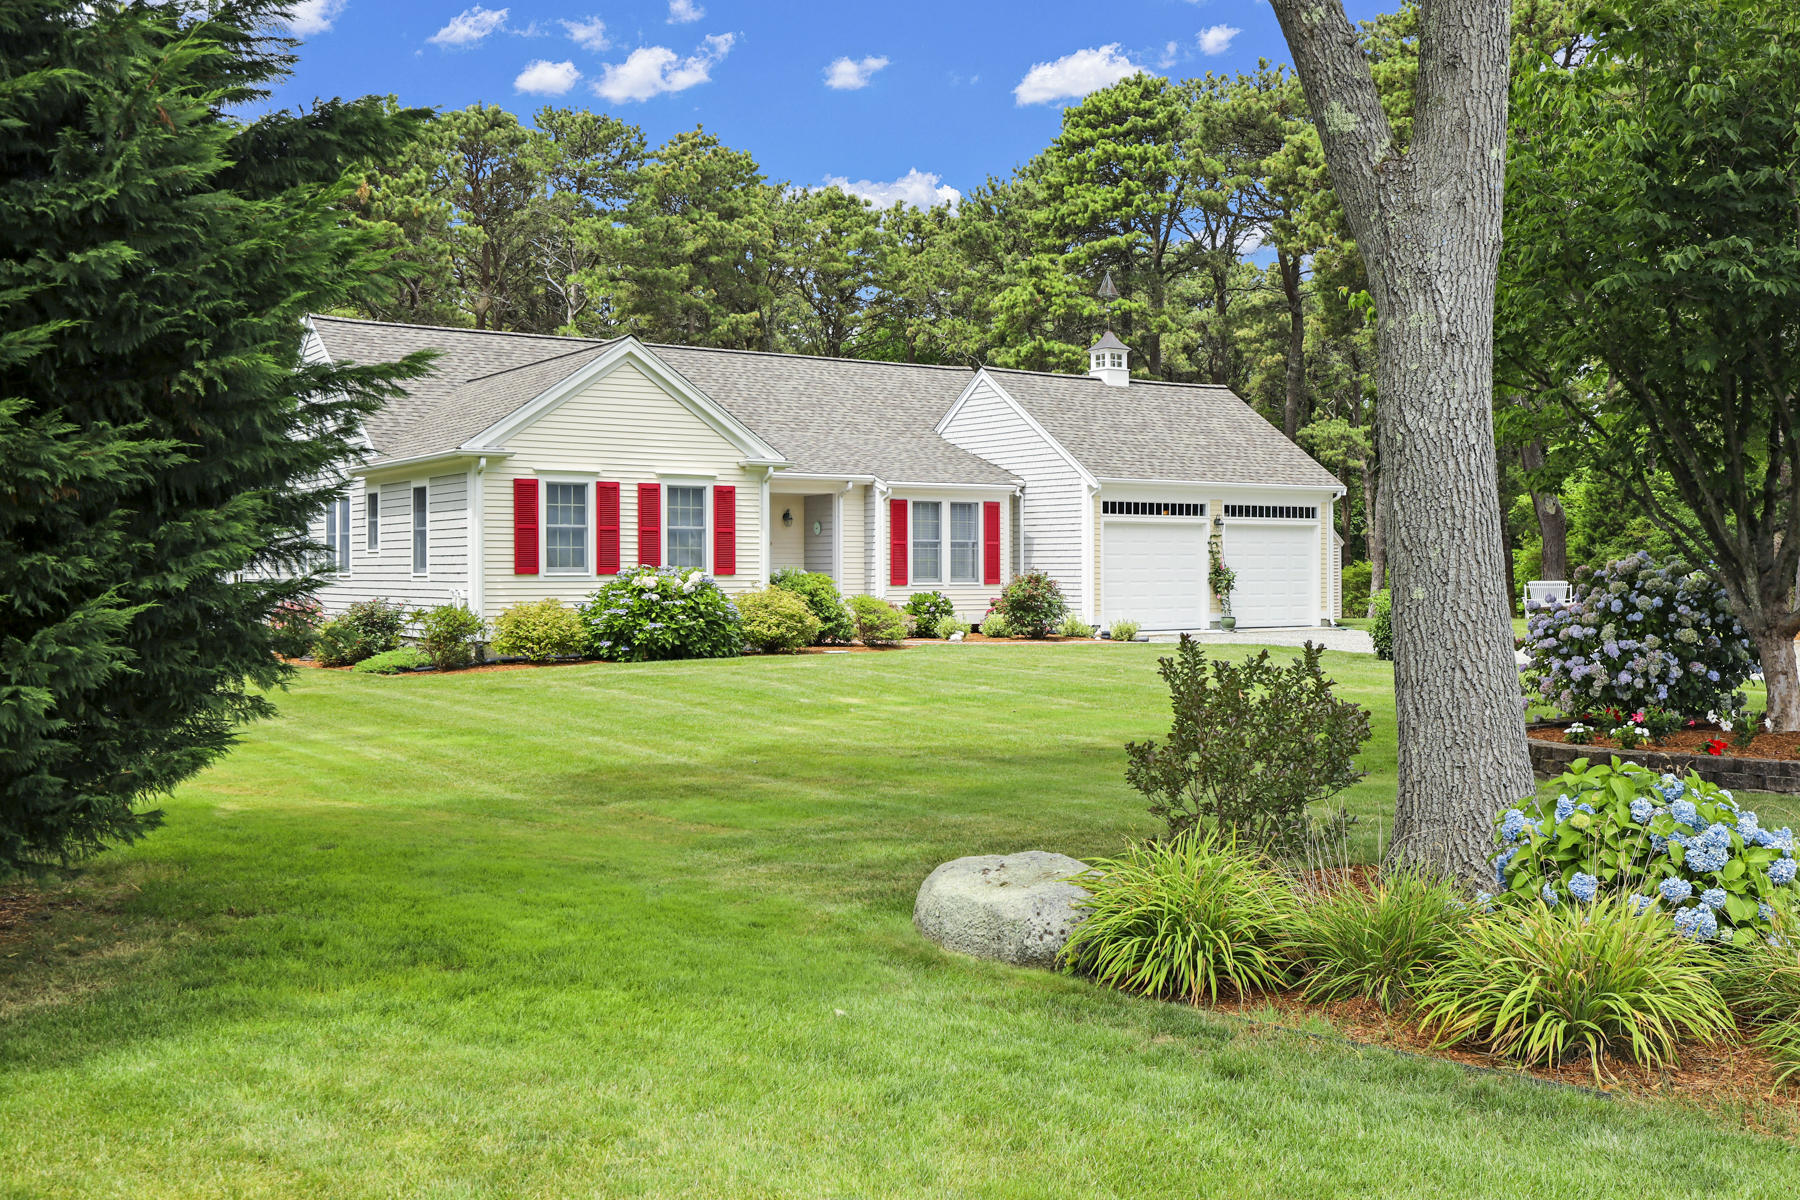 103 Clipper Way, Brewster MA, 02631 sales details